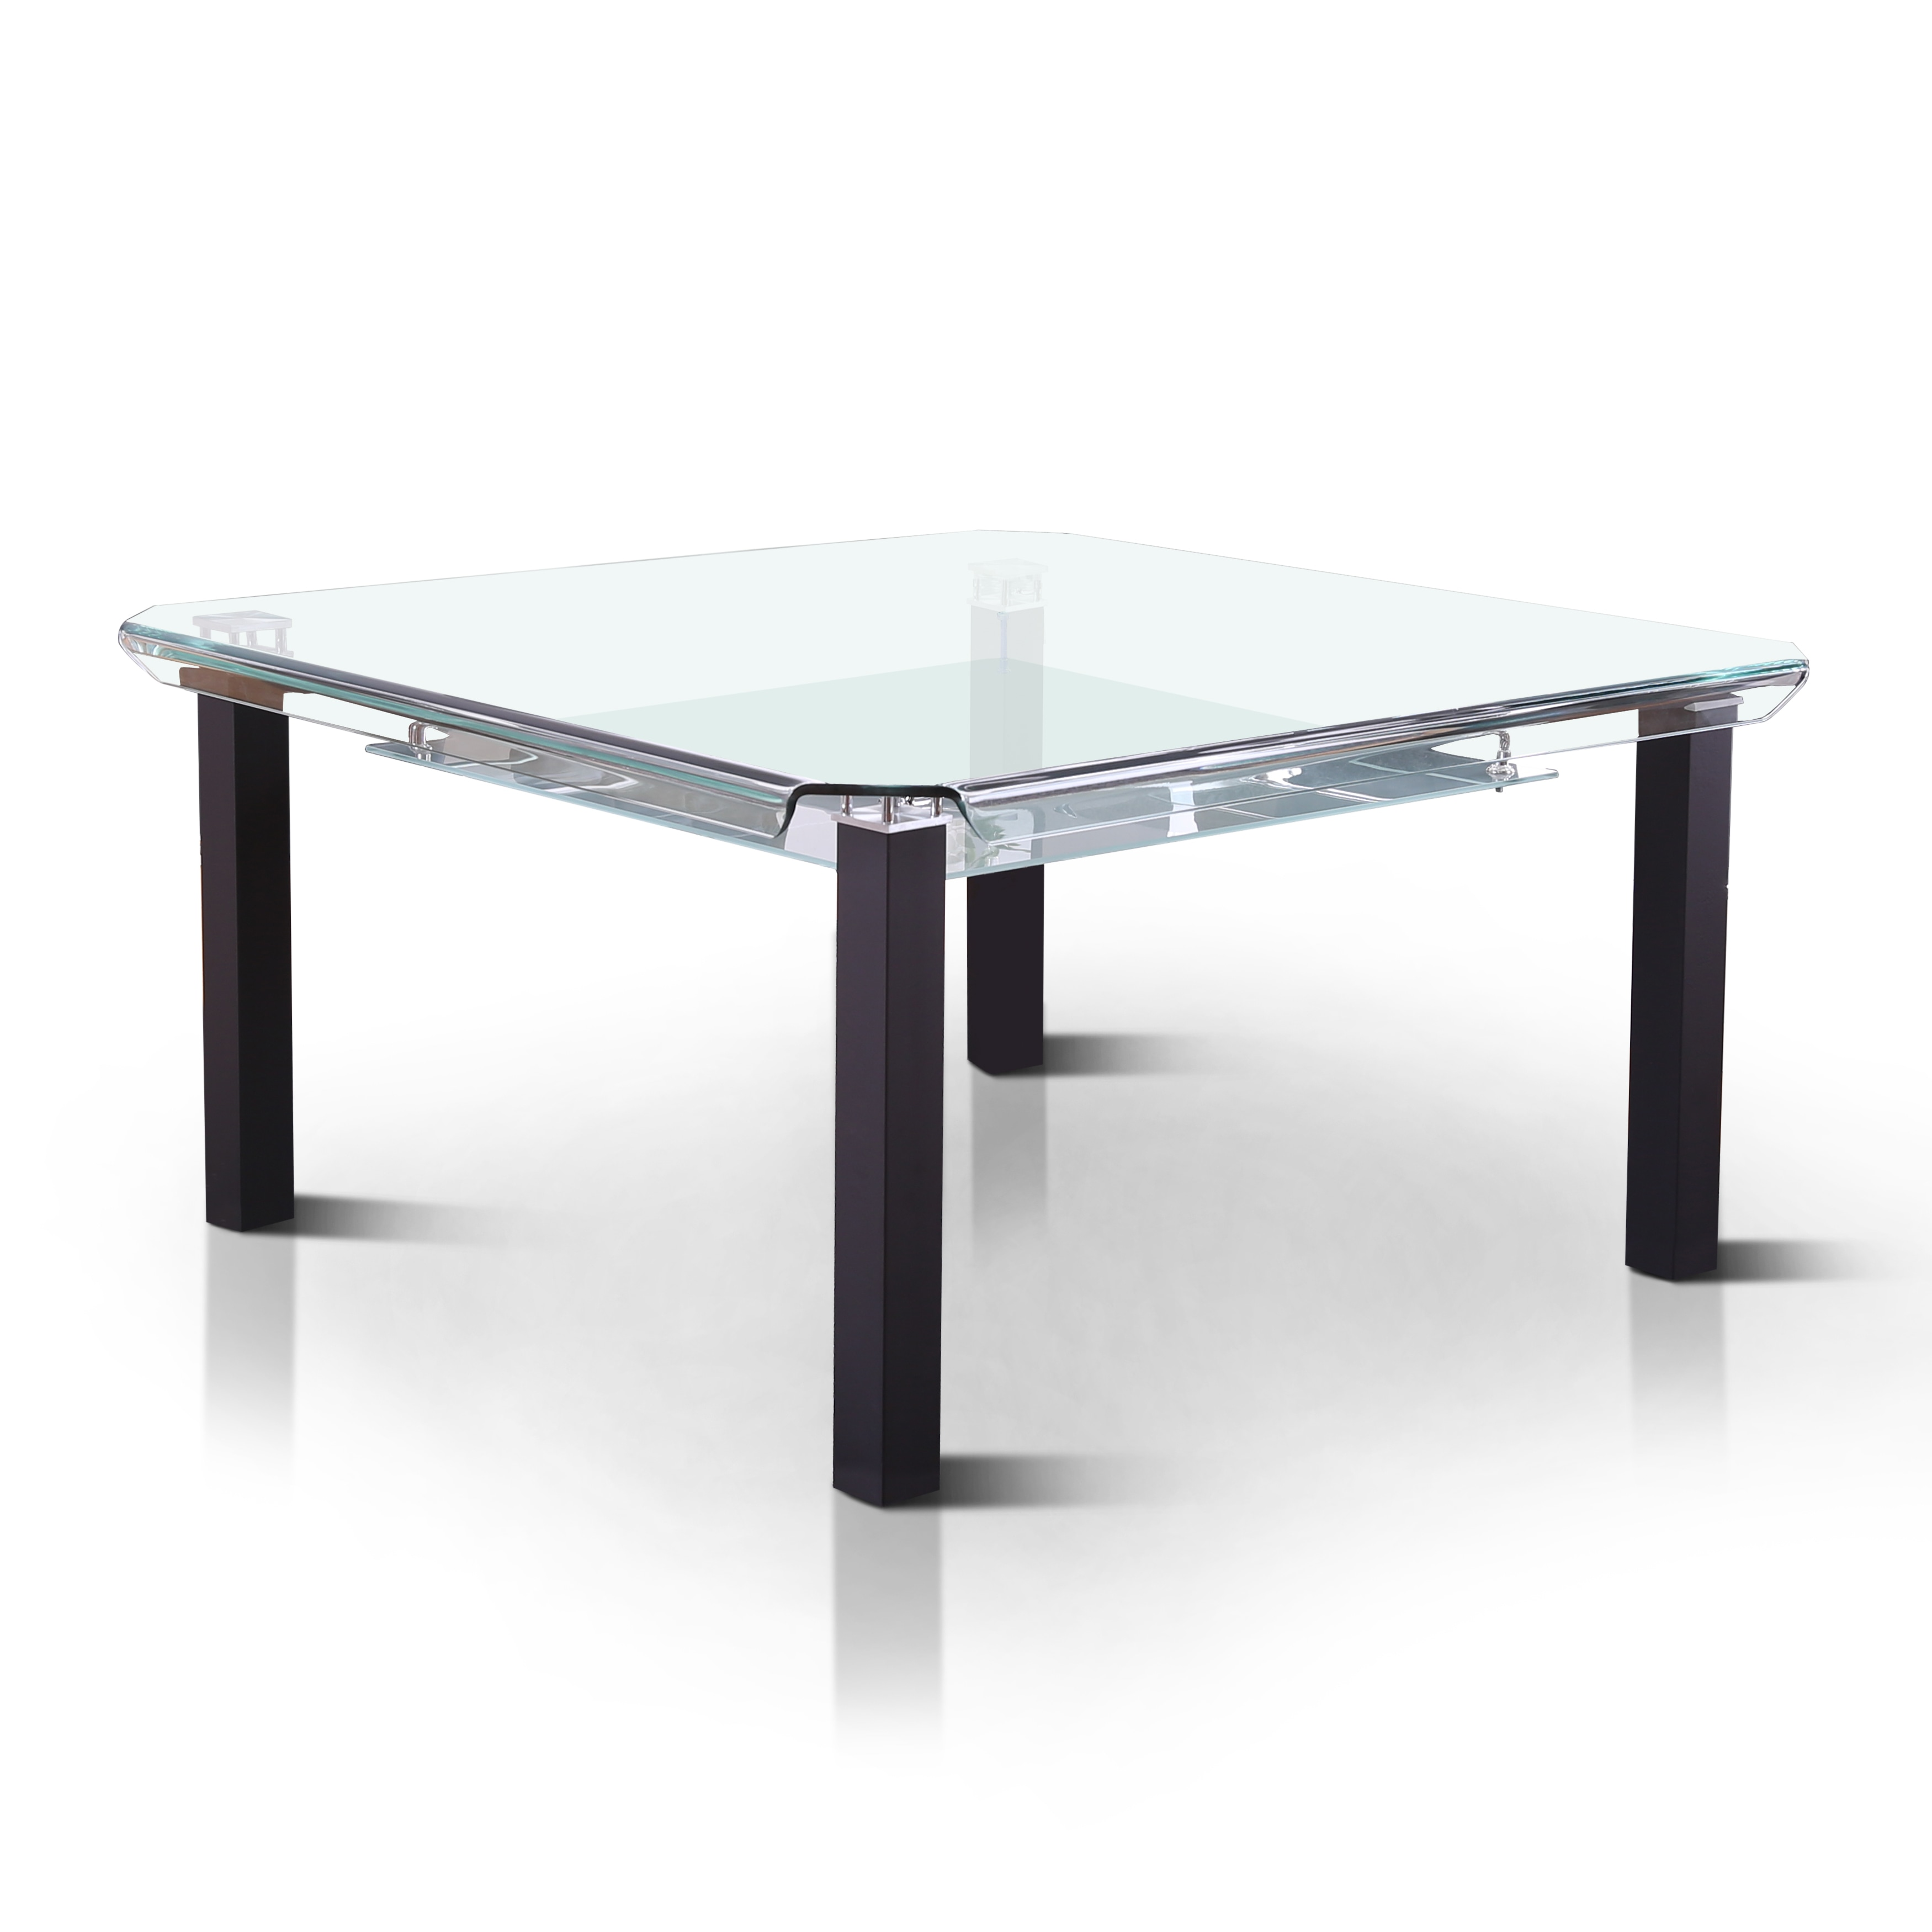 Furniture Of America Kell Contemporary Square Tempered Gl Top Dining Table Black On Free Shipping Today 12521475